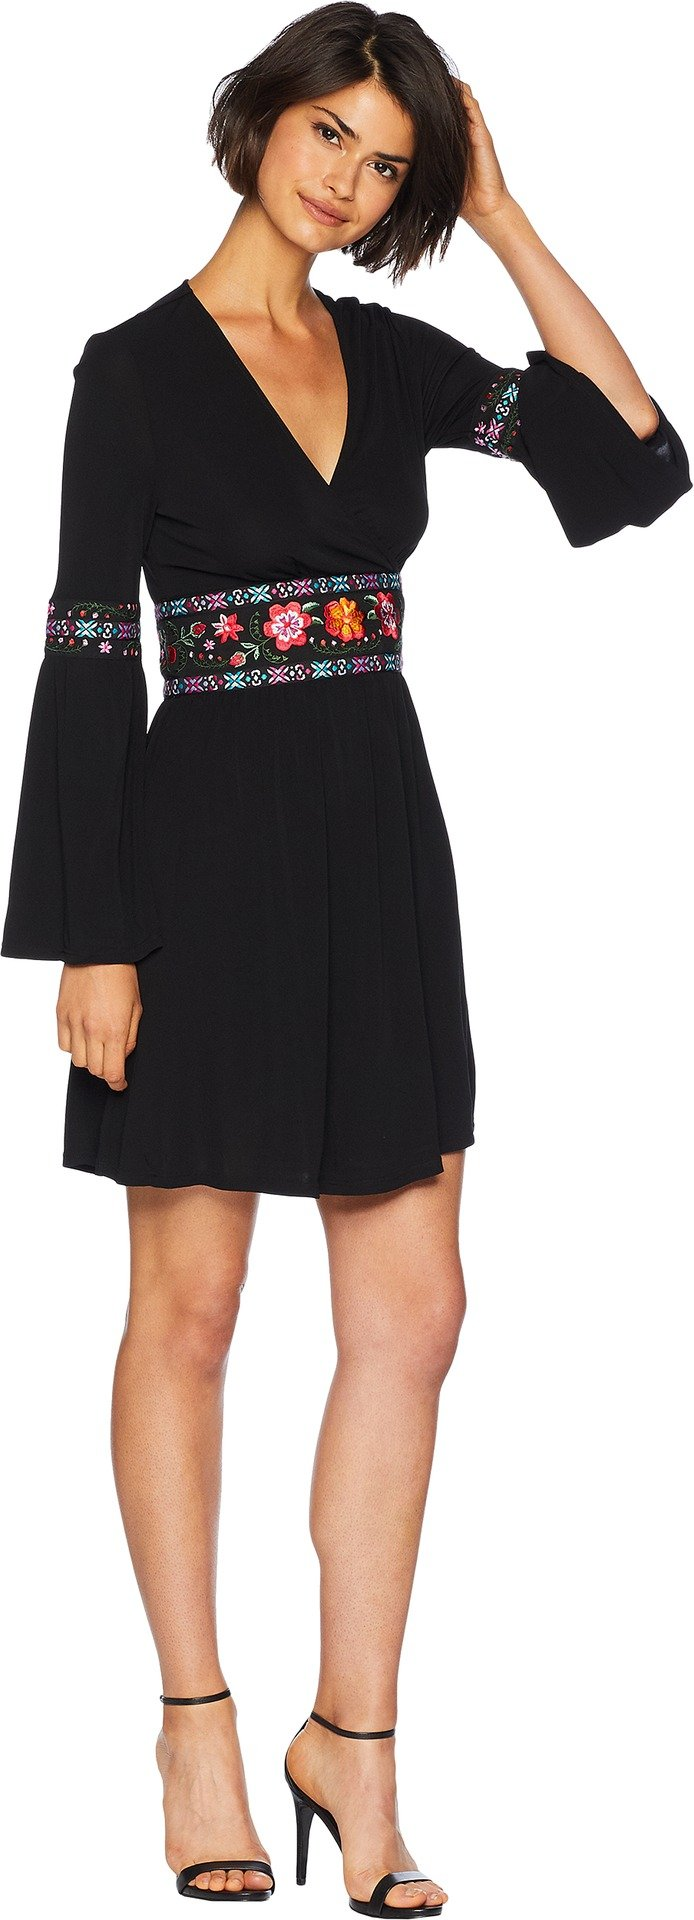 Juicy Couture Women's Knit Matte Jersey Embroidered Crossover Dress Pitch Black 12